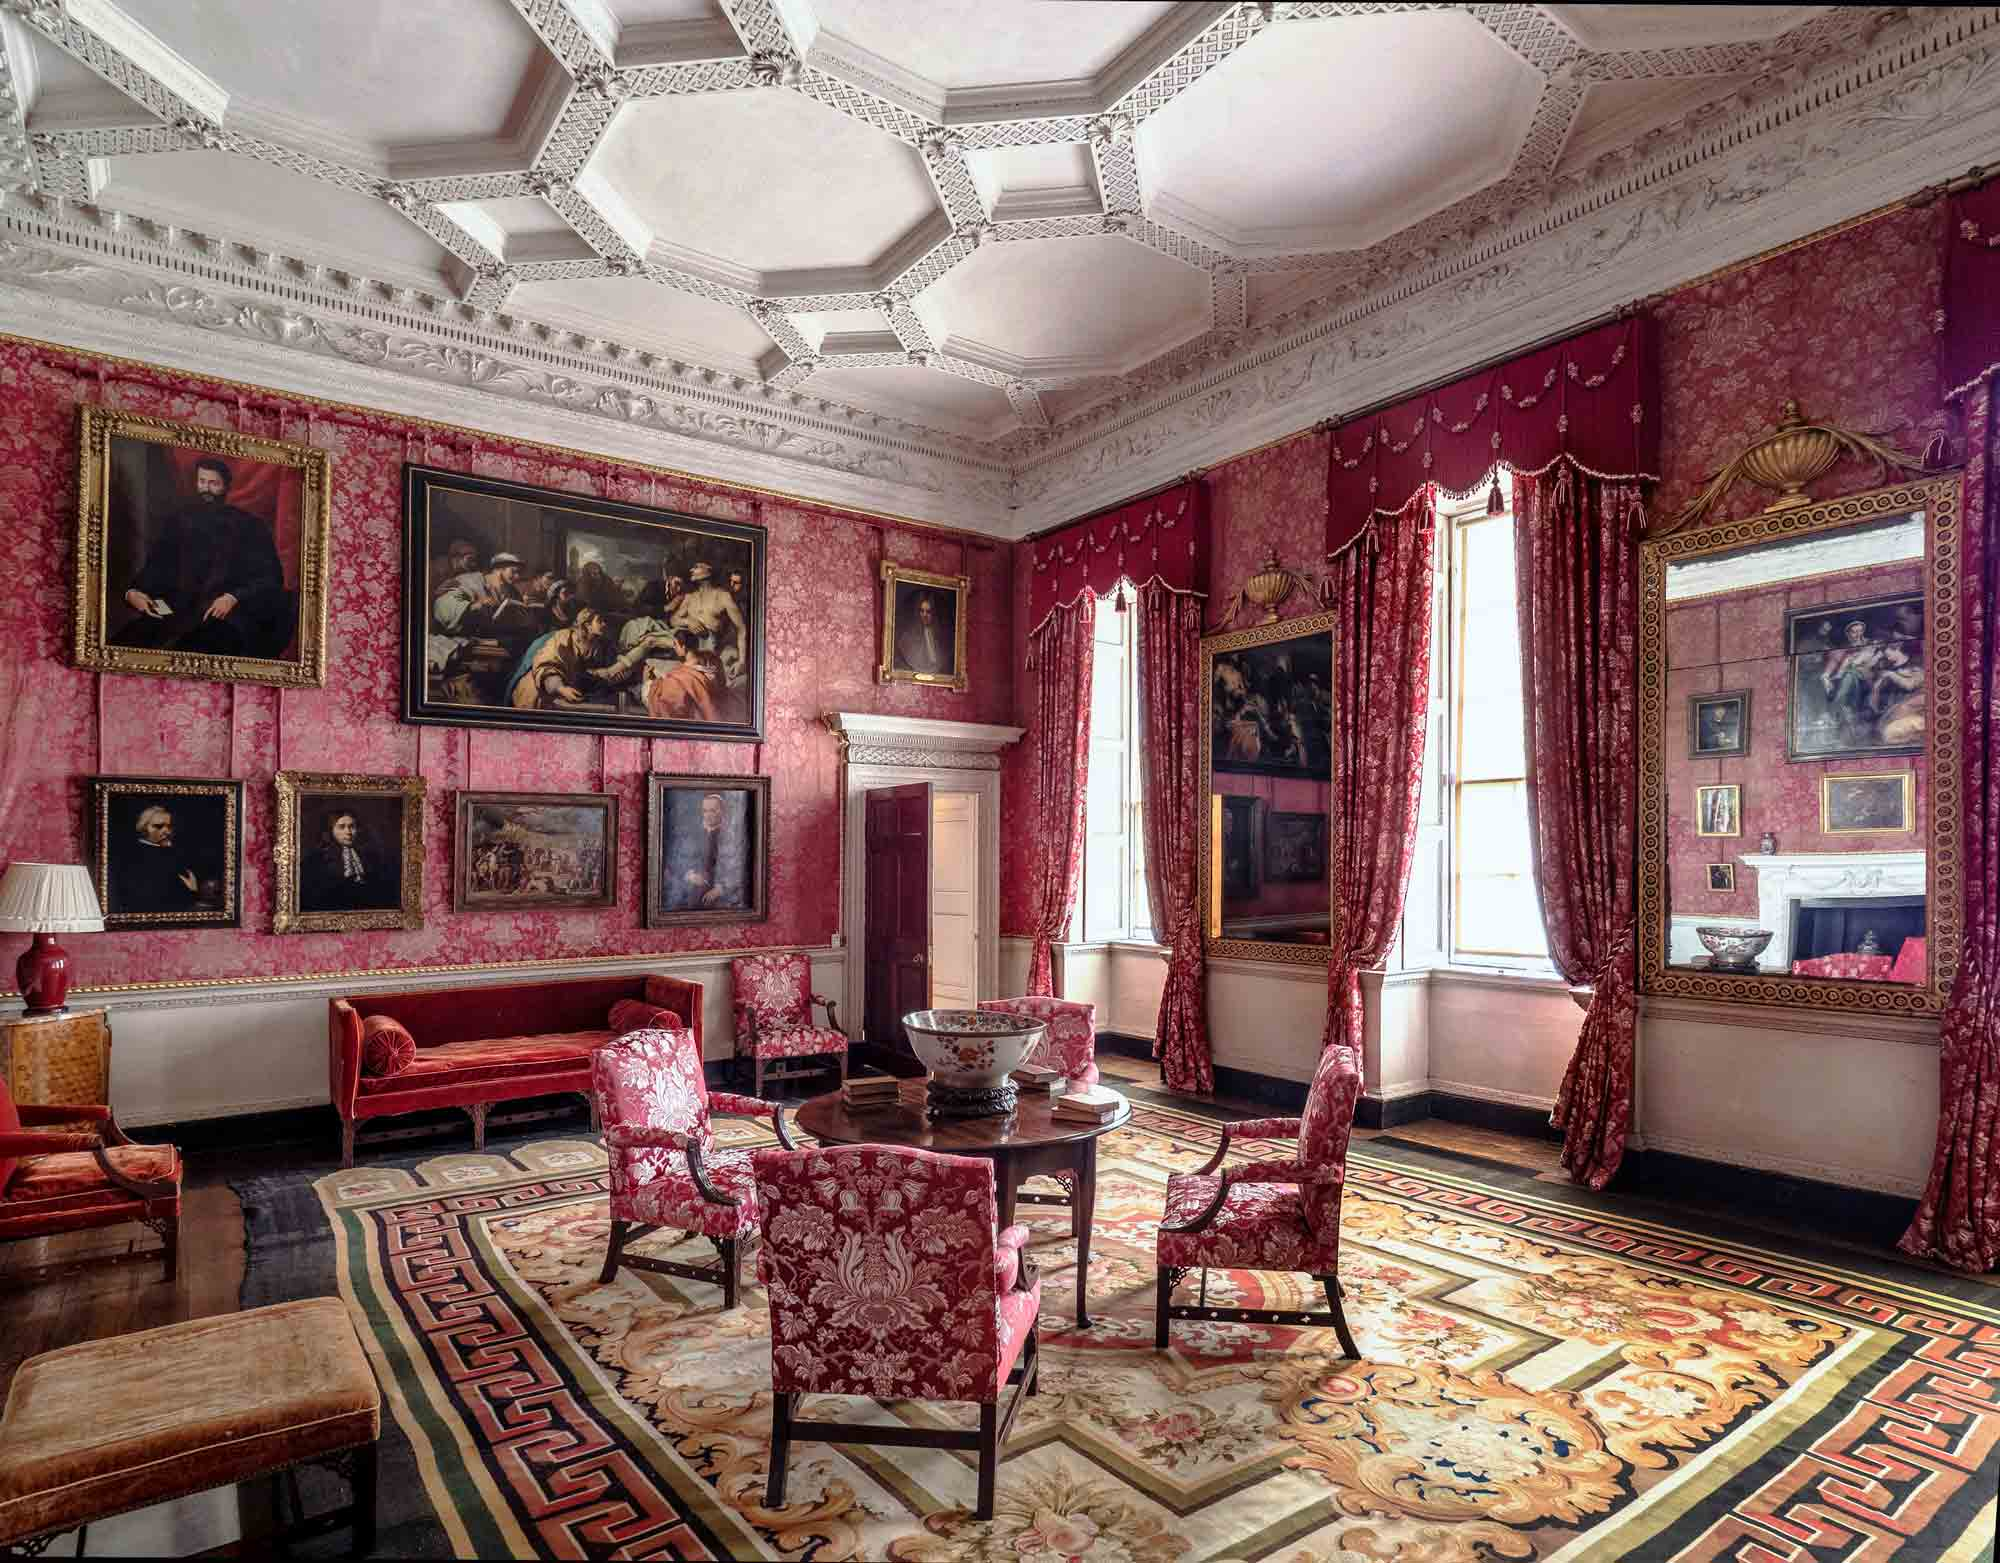 A glimpse of the Red Drawing Room after conservation of the silk wall hangings, showing the fabulous picture hang and the new curtains and upholstery made of silk reproduced to match the original